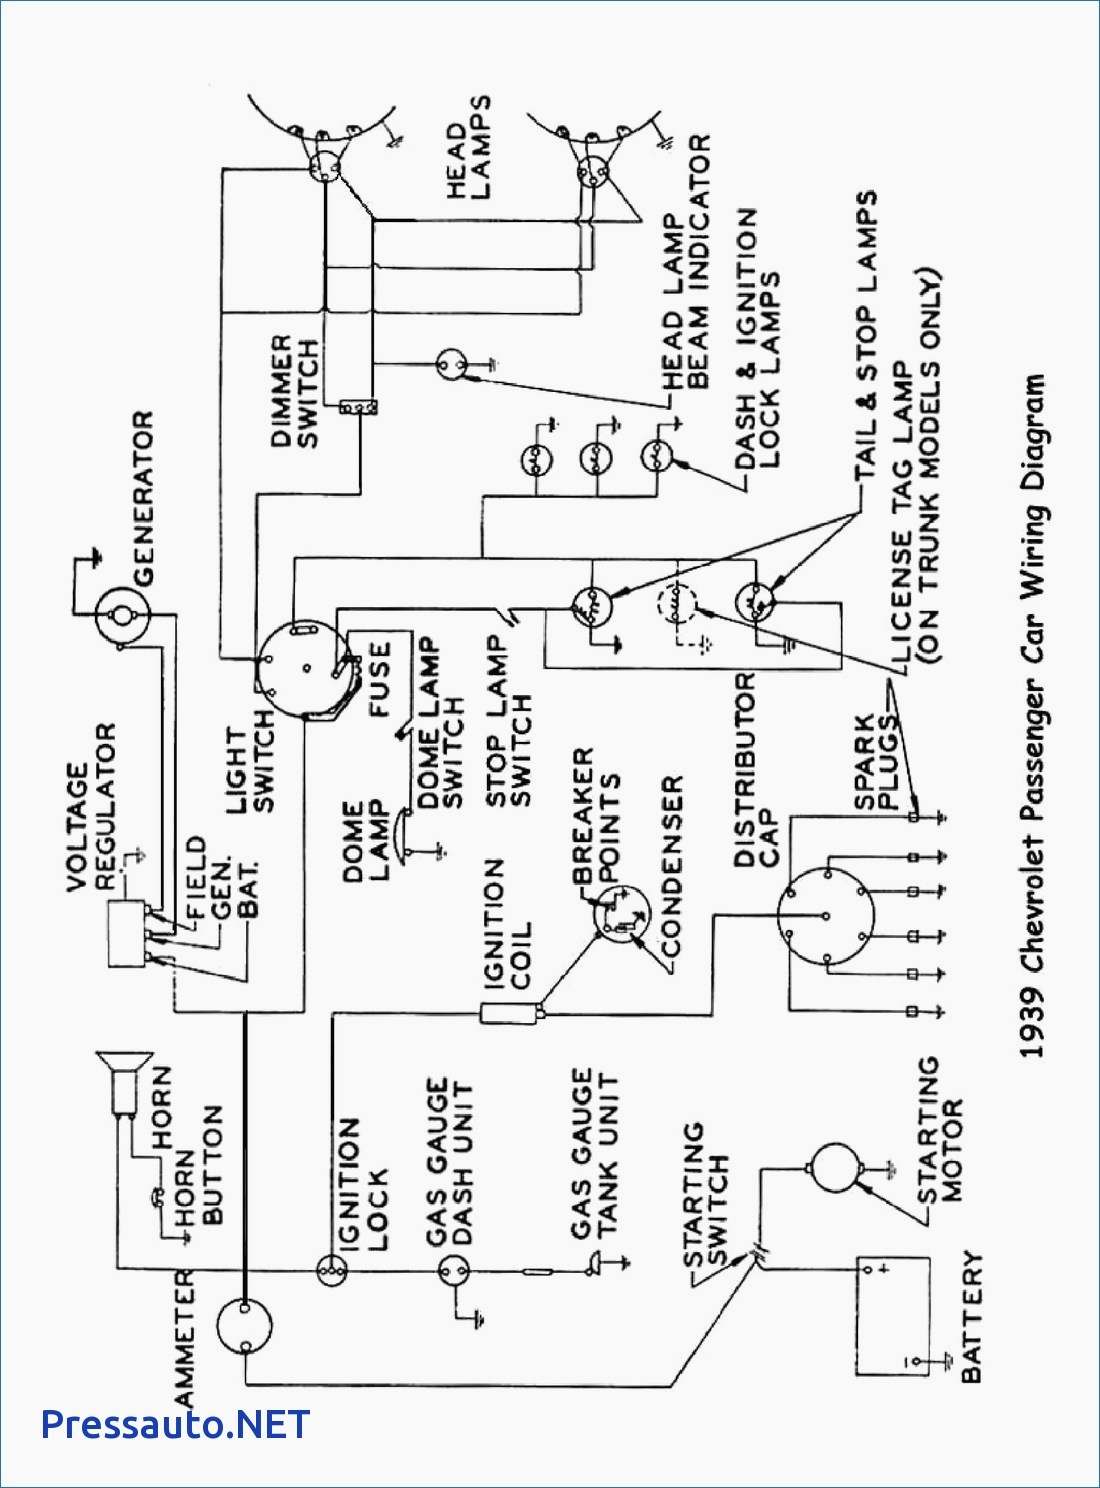 Electrical Drawing At Free For Personal Use Switch Symbol Wiring Diagram 1100x1488 Symbols In Engineering Polaris Snowmobile